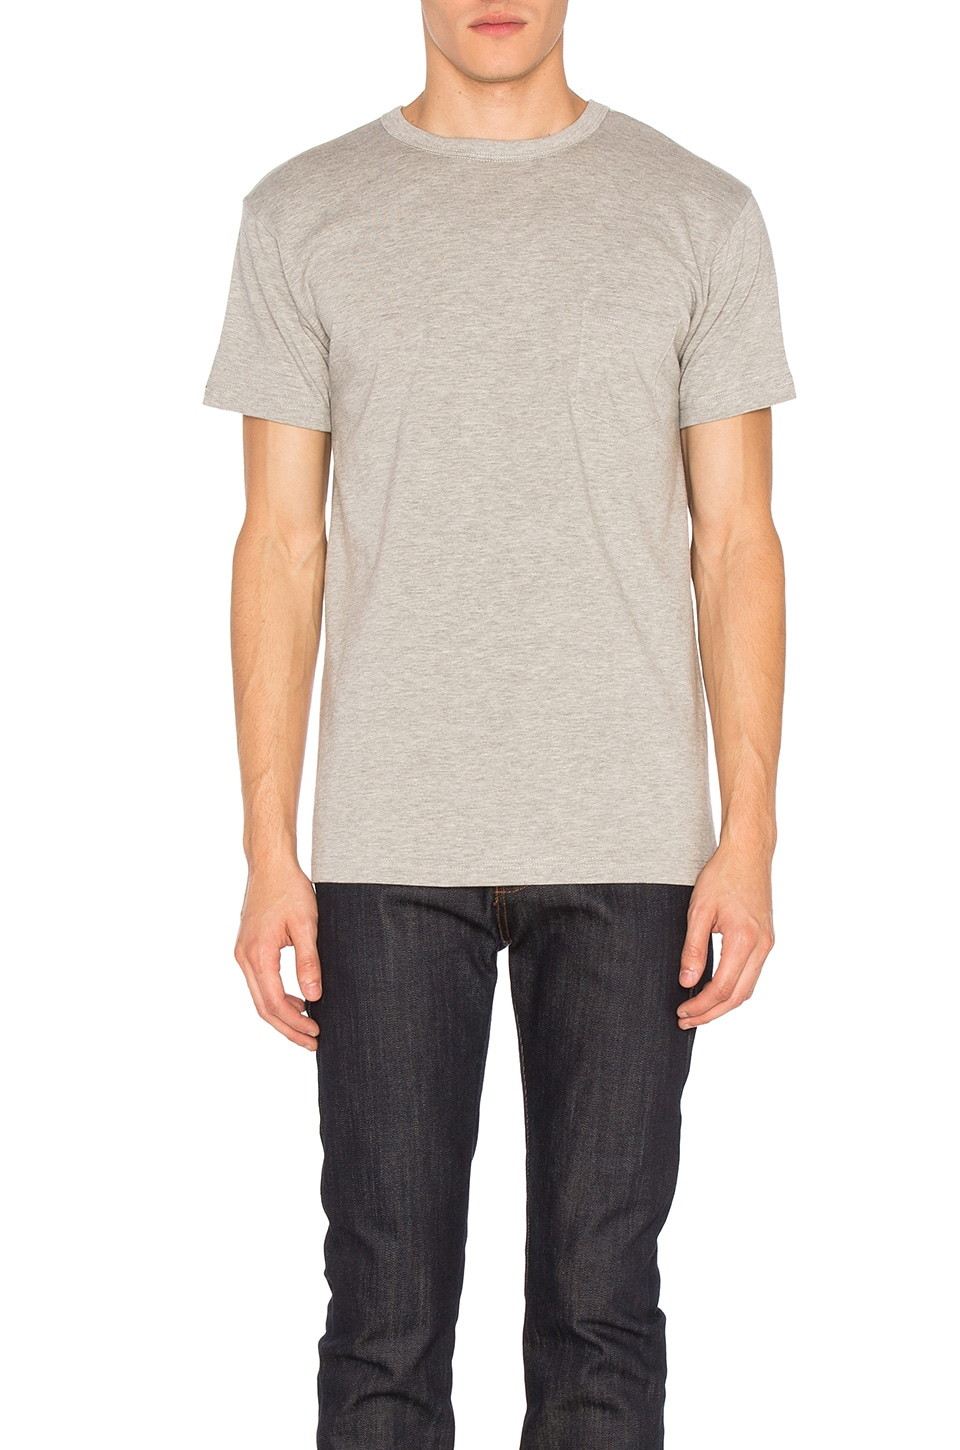 3sixteen Heavyweight Pocket Tee 2 Pack in Heather Grey